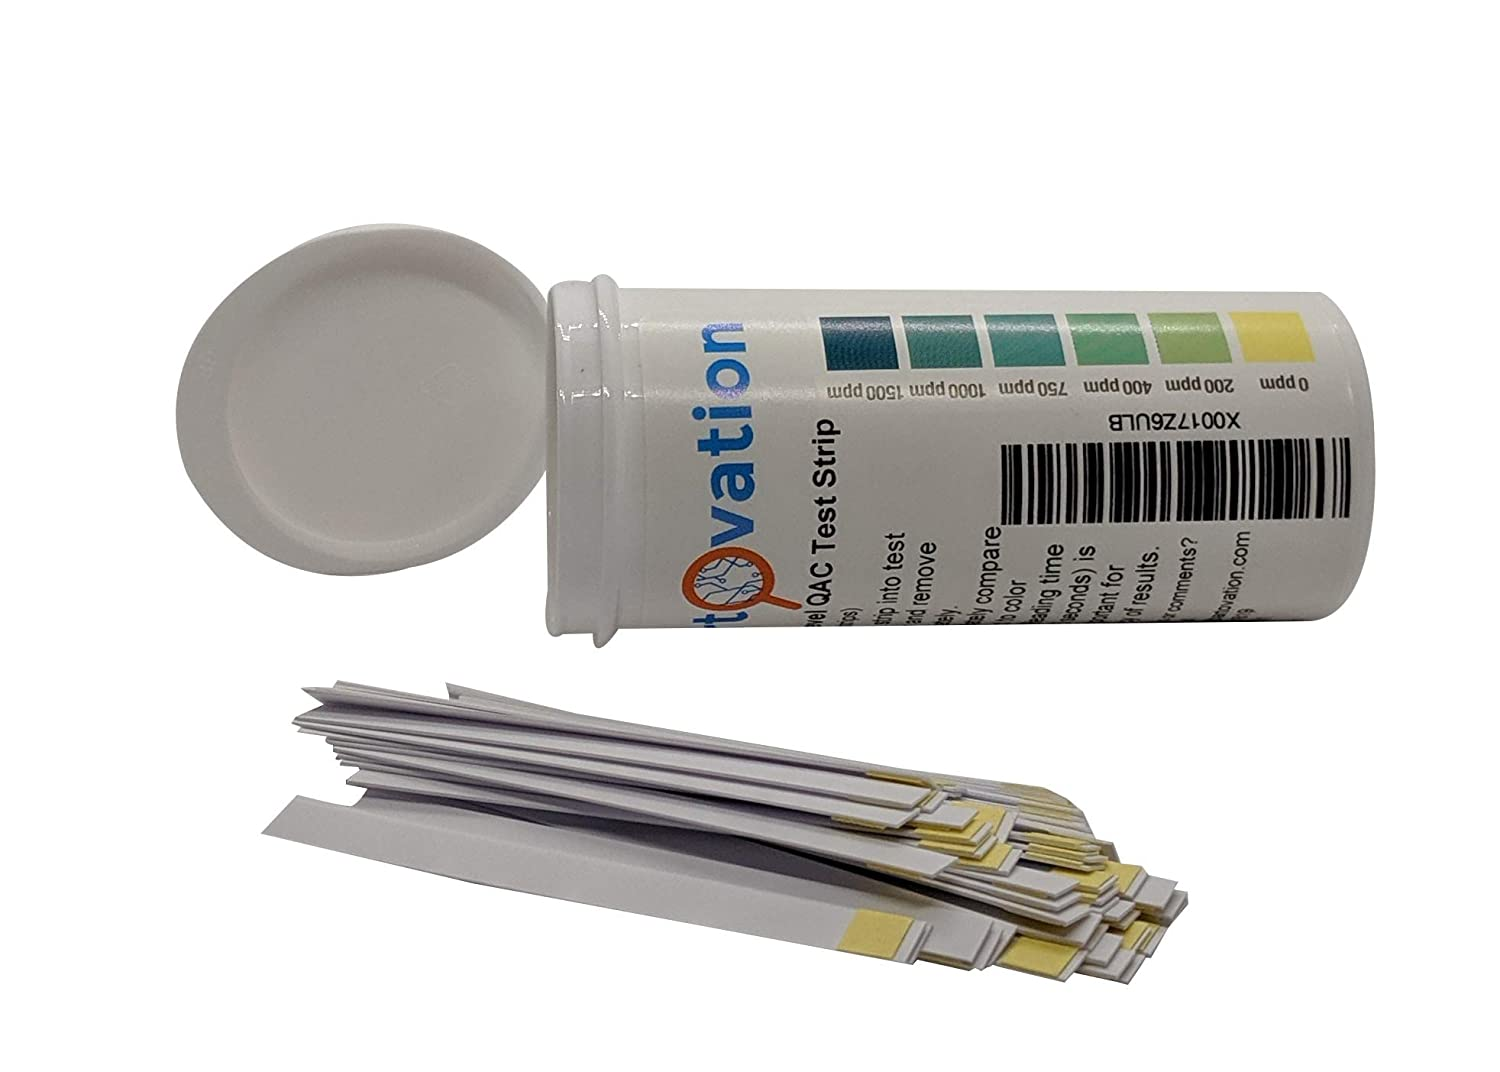 Vial of Plastic Test Strips for High Level Quaternary Ammonium 750 Sanitizer Test KIT 200 1000 QAC 1500 ppm Vivid Color Indicators 400 Use with Steramine /& Other Quaternary Sanitizers 0